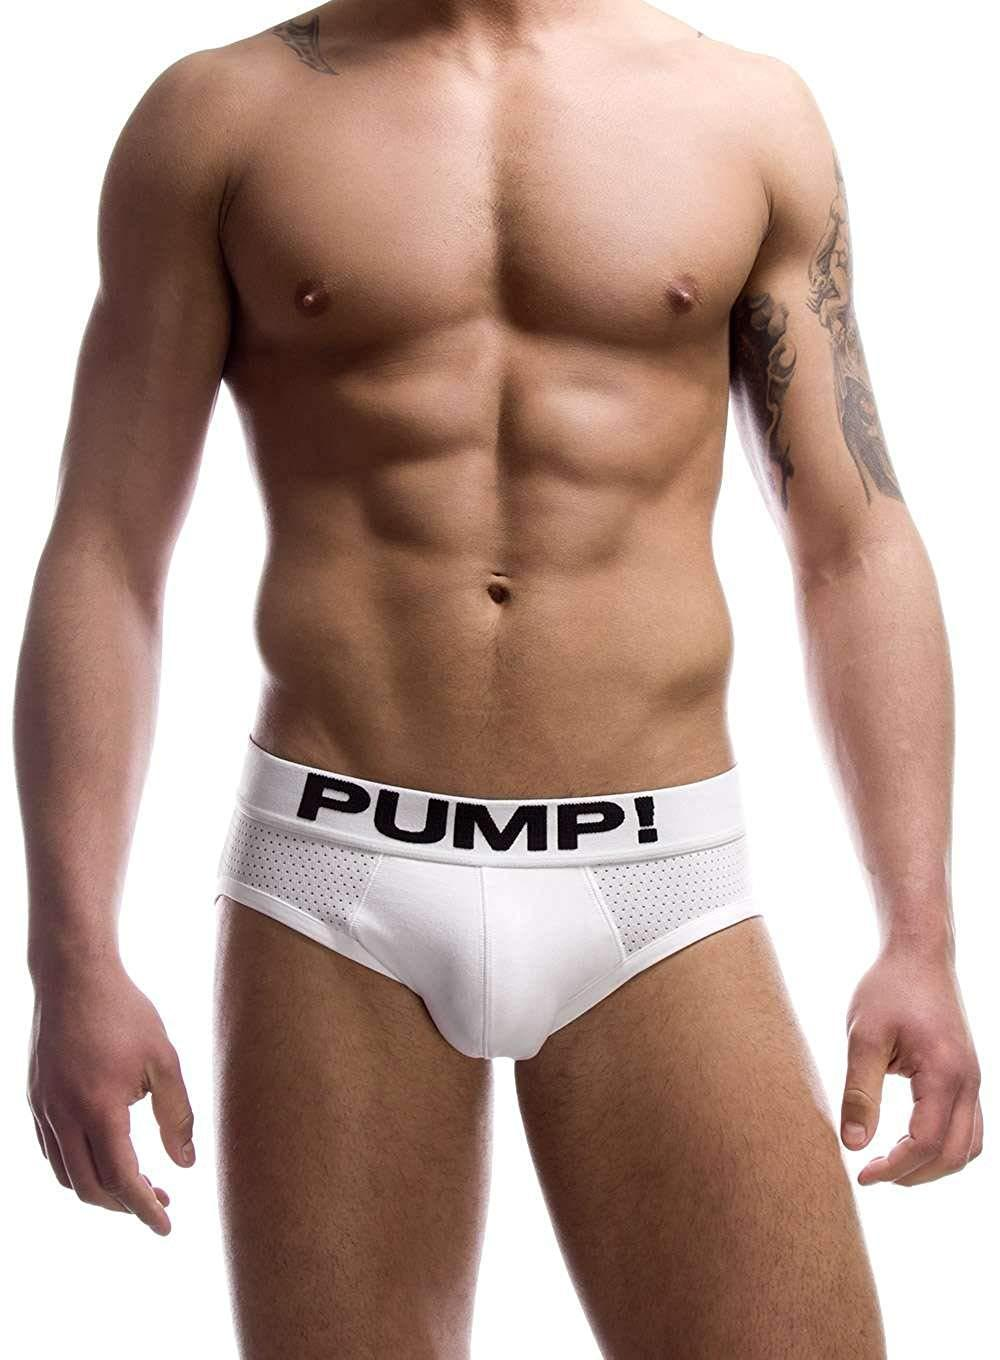 PUMP! Classic White Brief